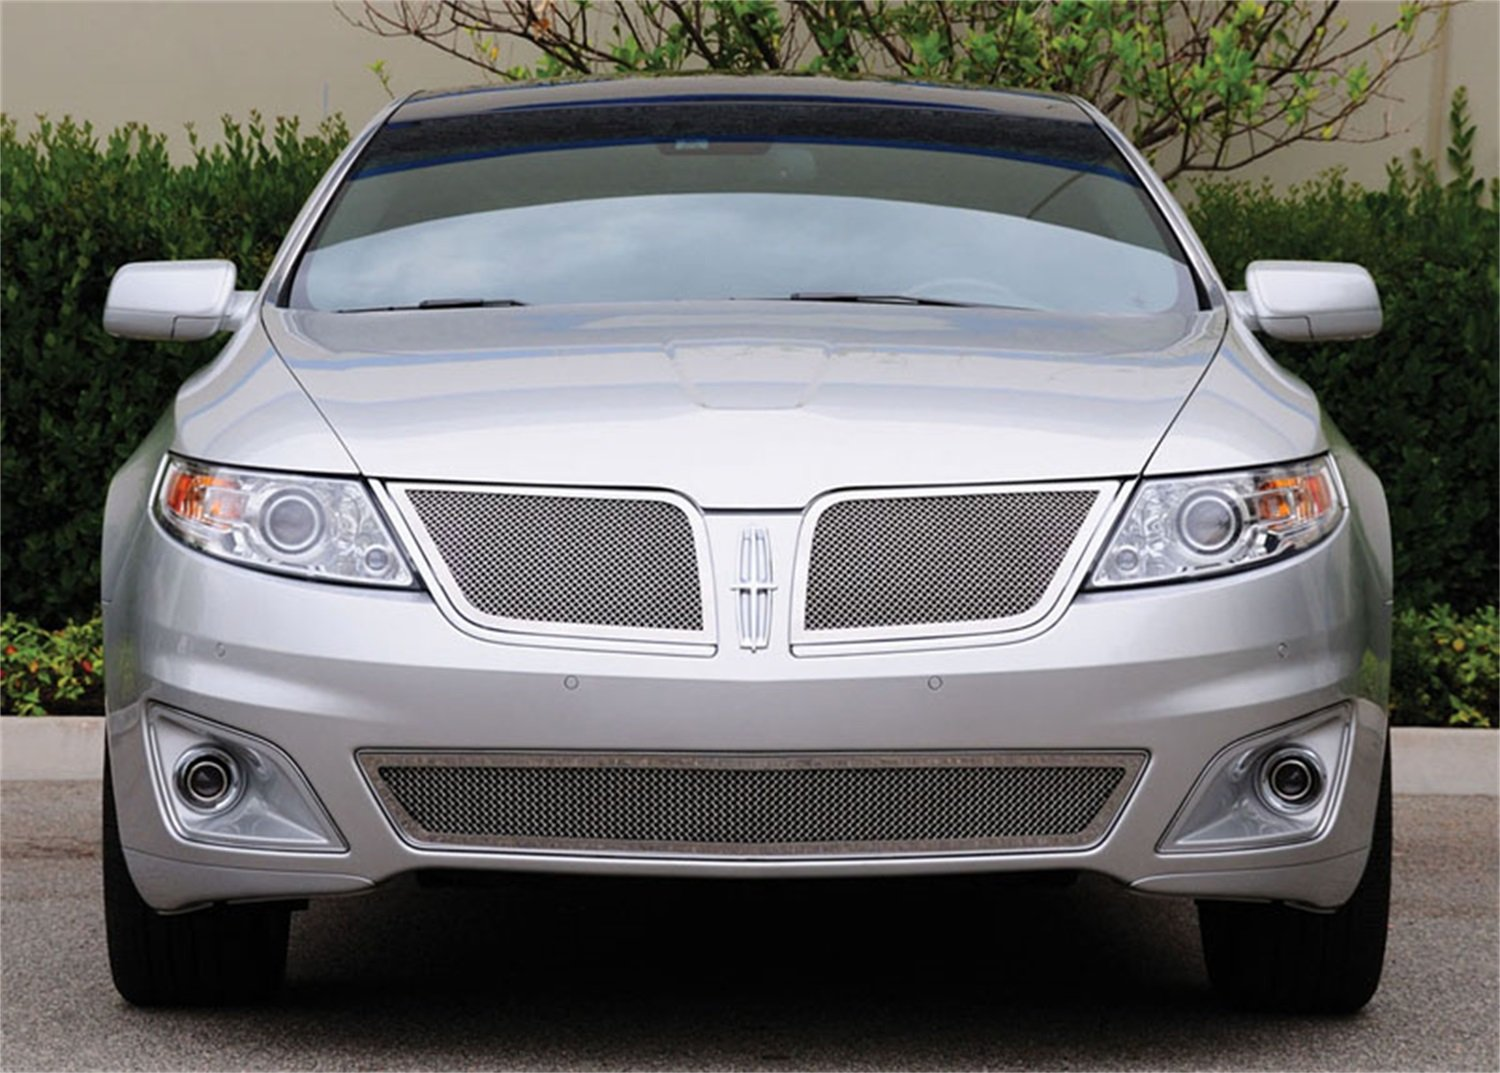 TRex Grilles 54718 Upper Class Small Formed Mesh Stainless Polished Finish Grille Insert for Lincoln MKS